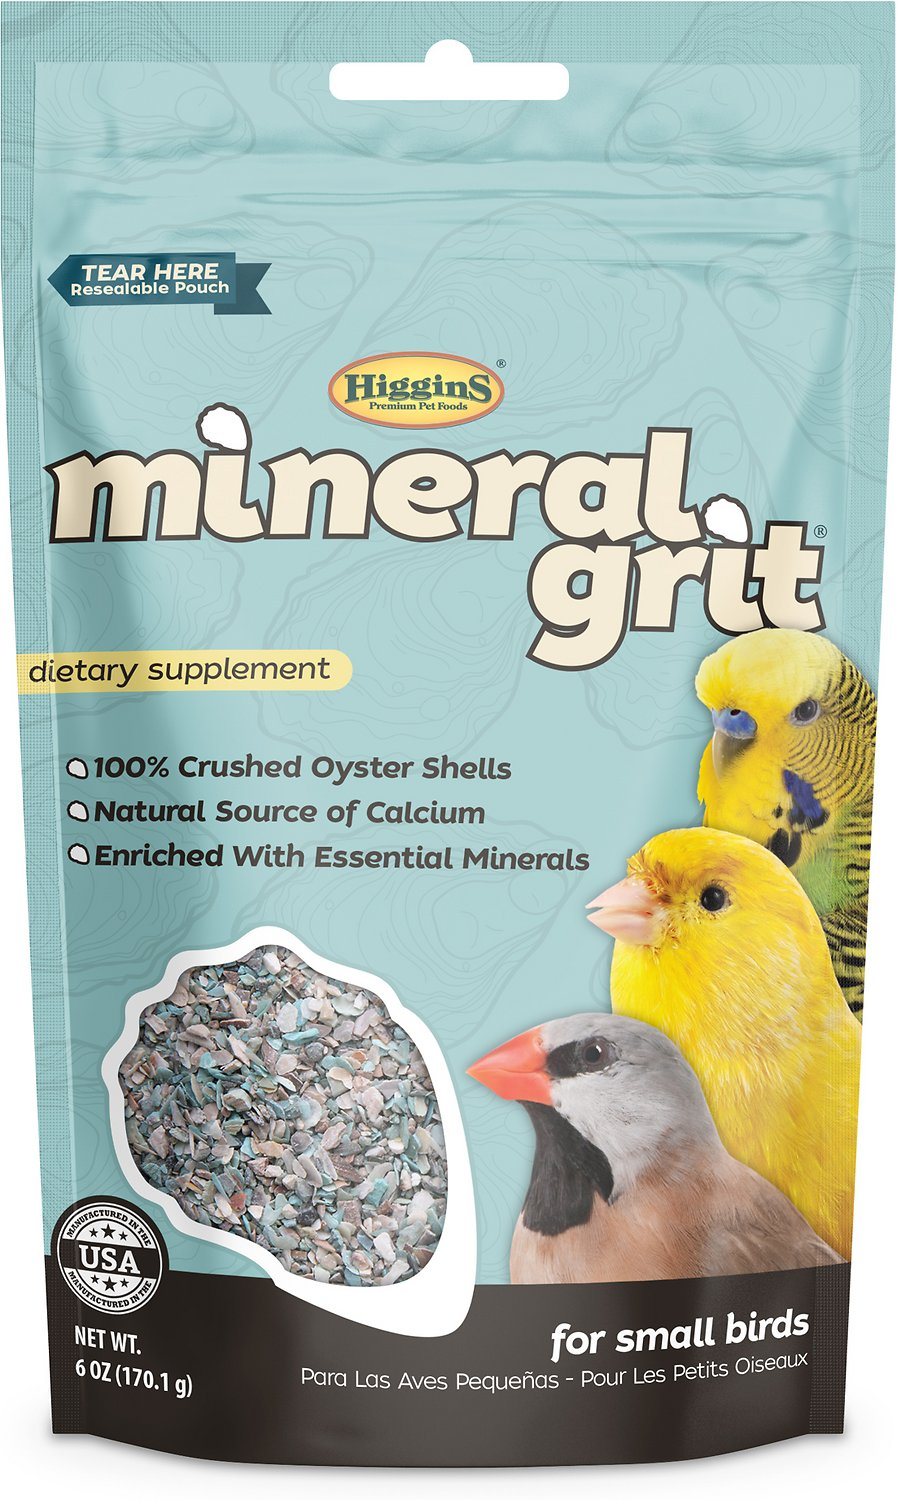 Higgins Mineral Grit Small Bird Supplement, 6-oz bag (Weights: 6ounces) Image